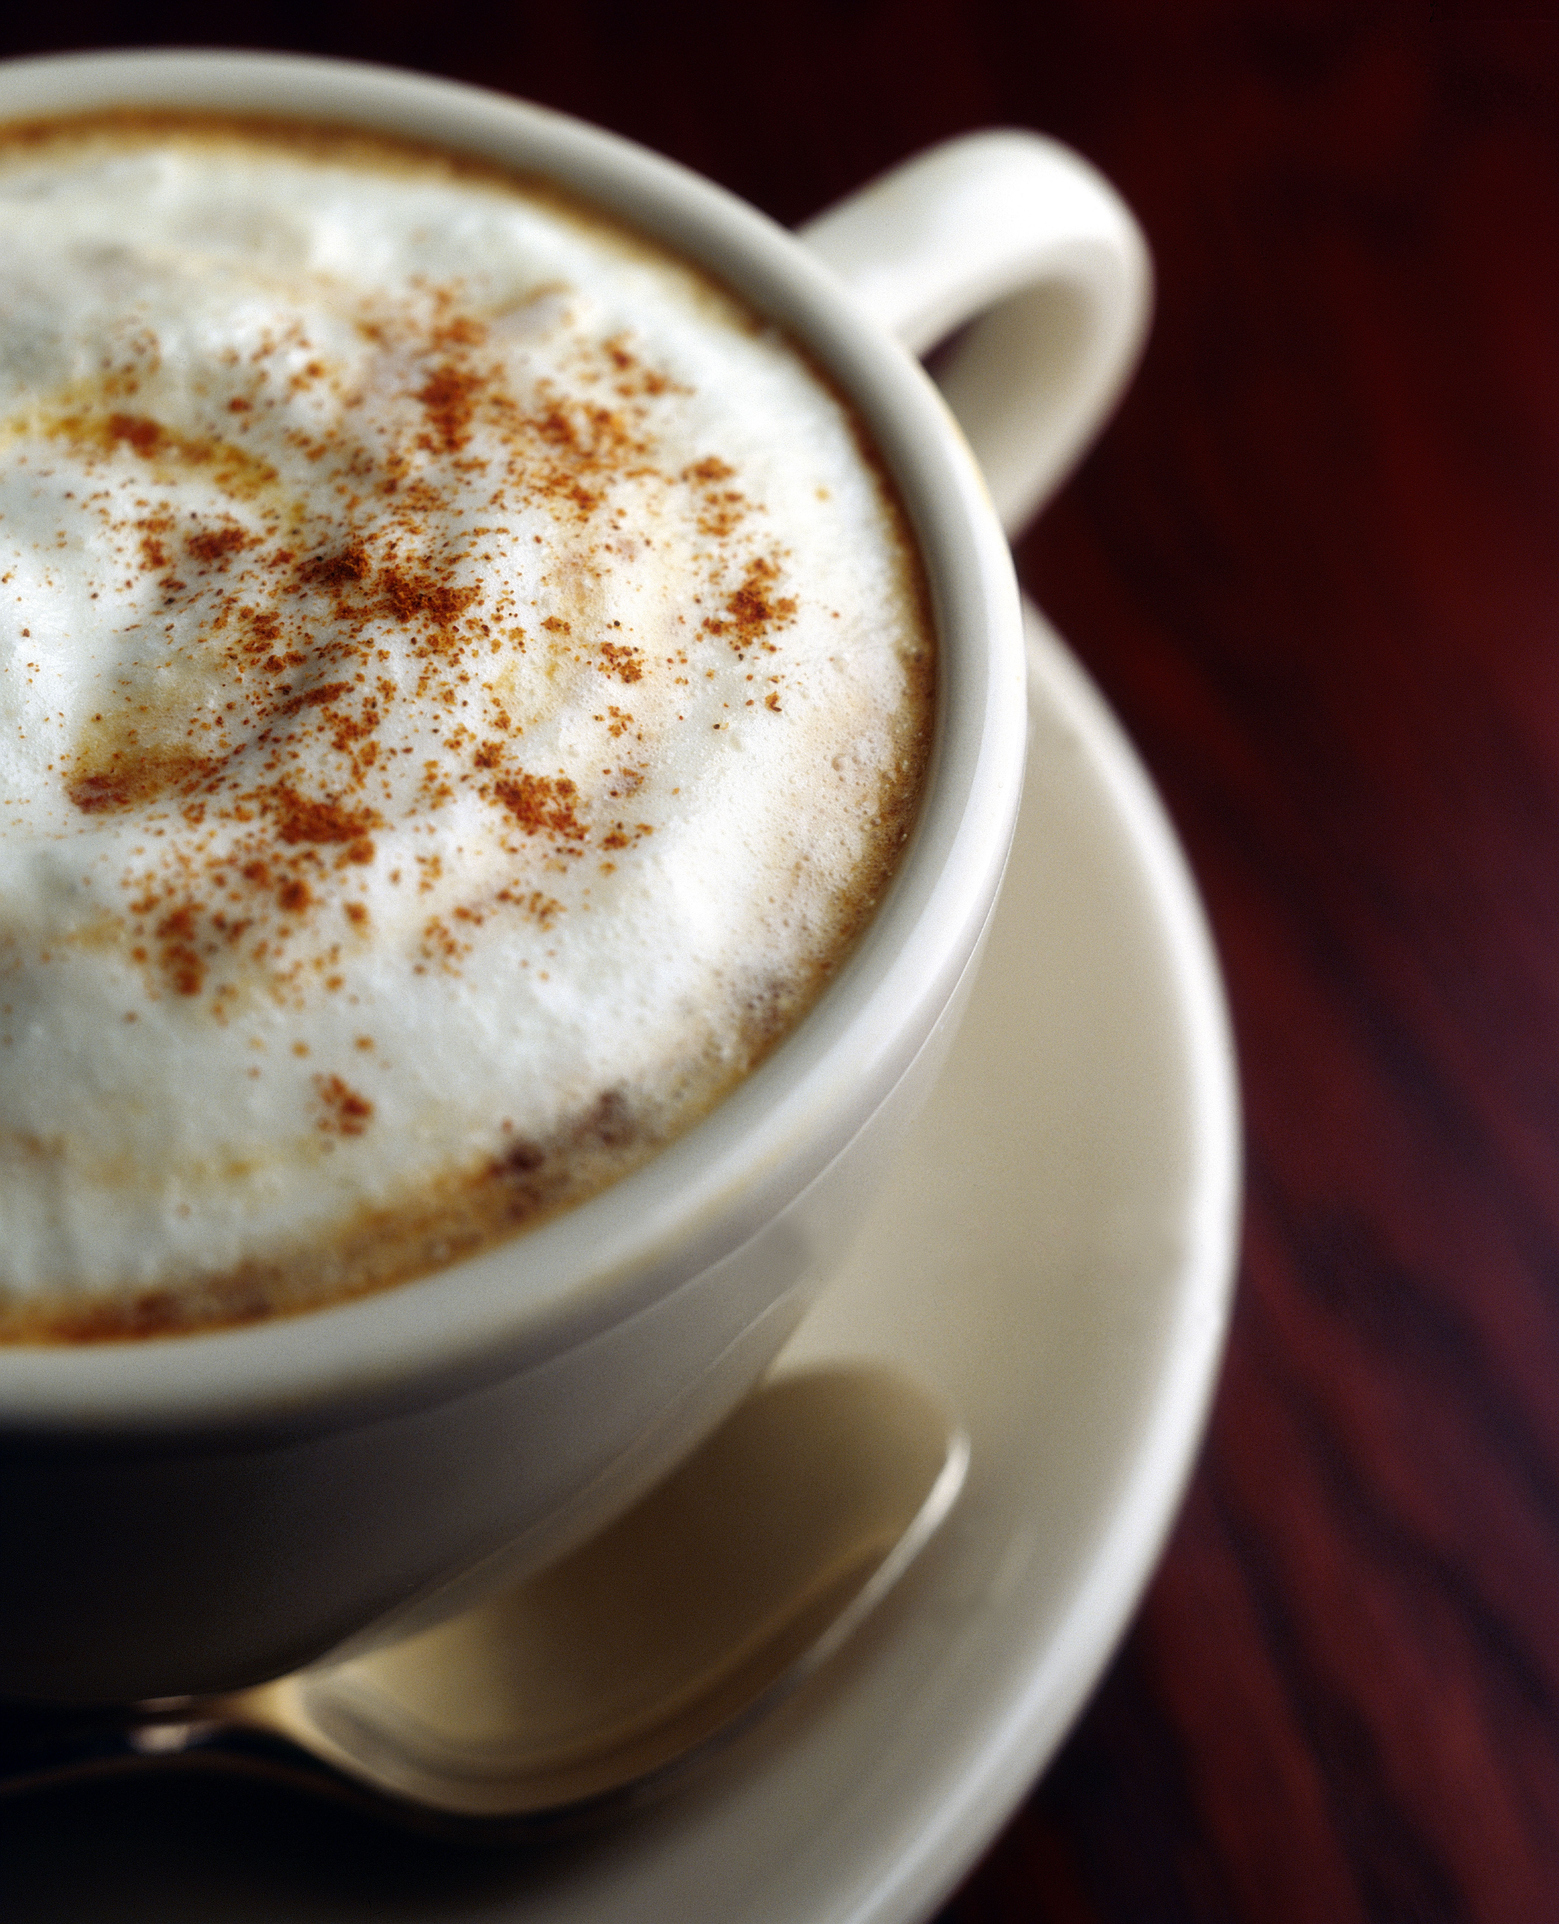 How to Make Your Own Oatmeal Latte